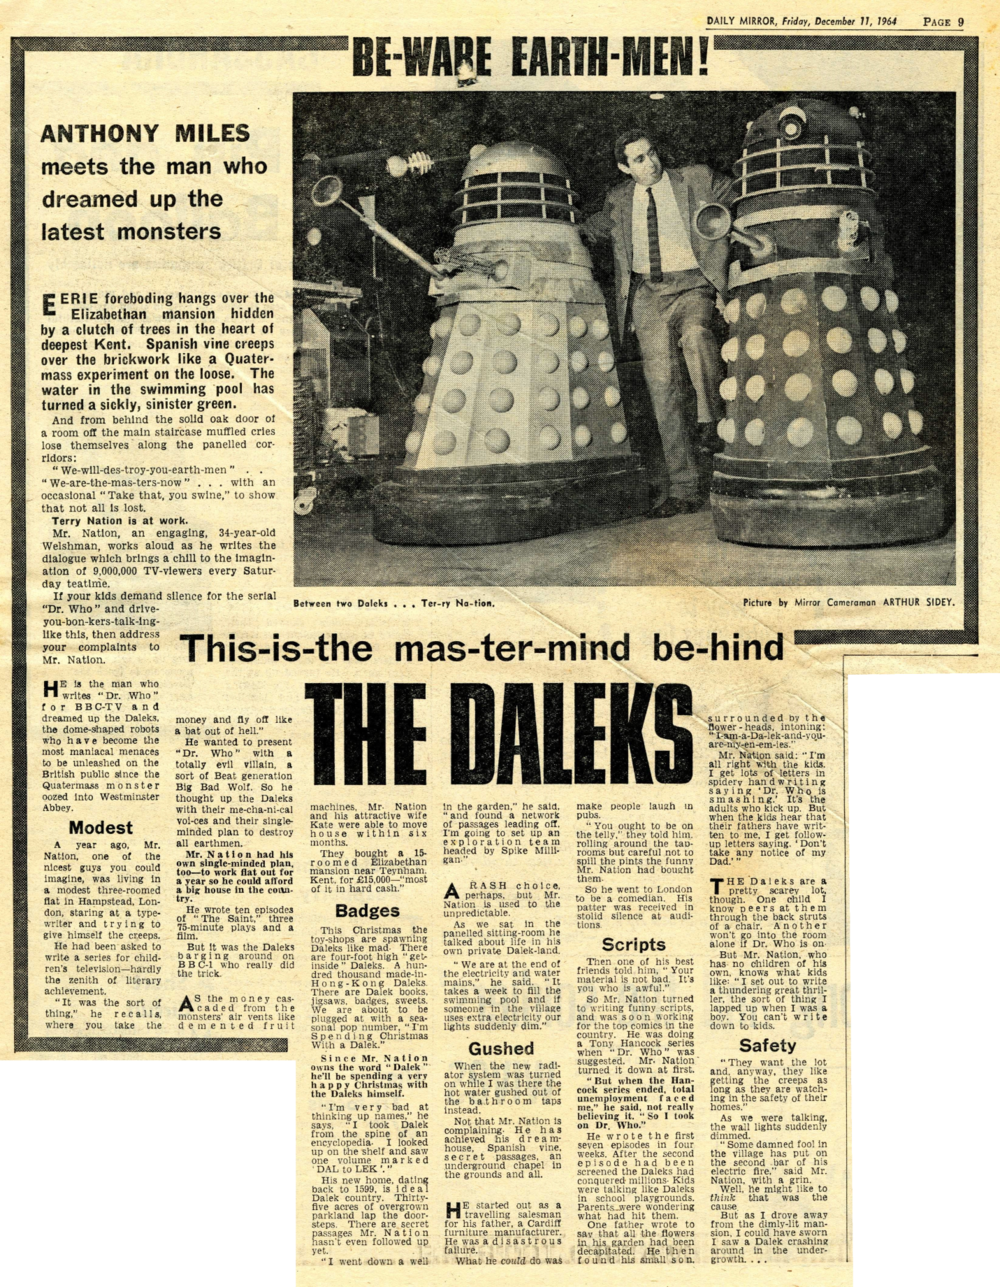 Daily Mirror, 11 December 1964. From the Ray Cusick cuttings collection